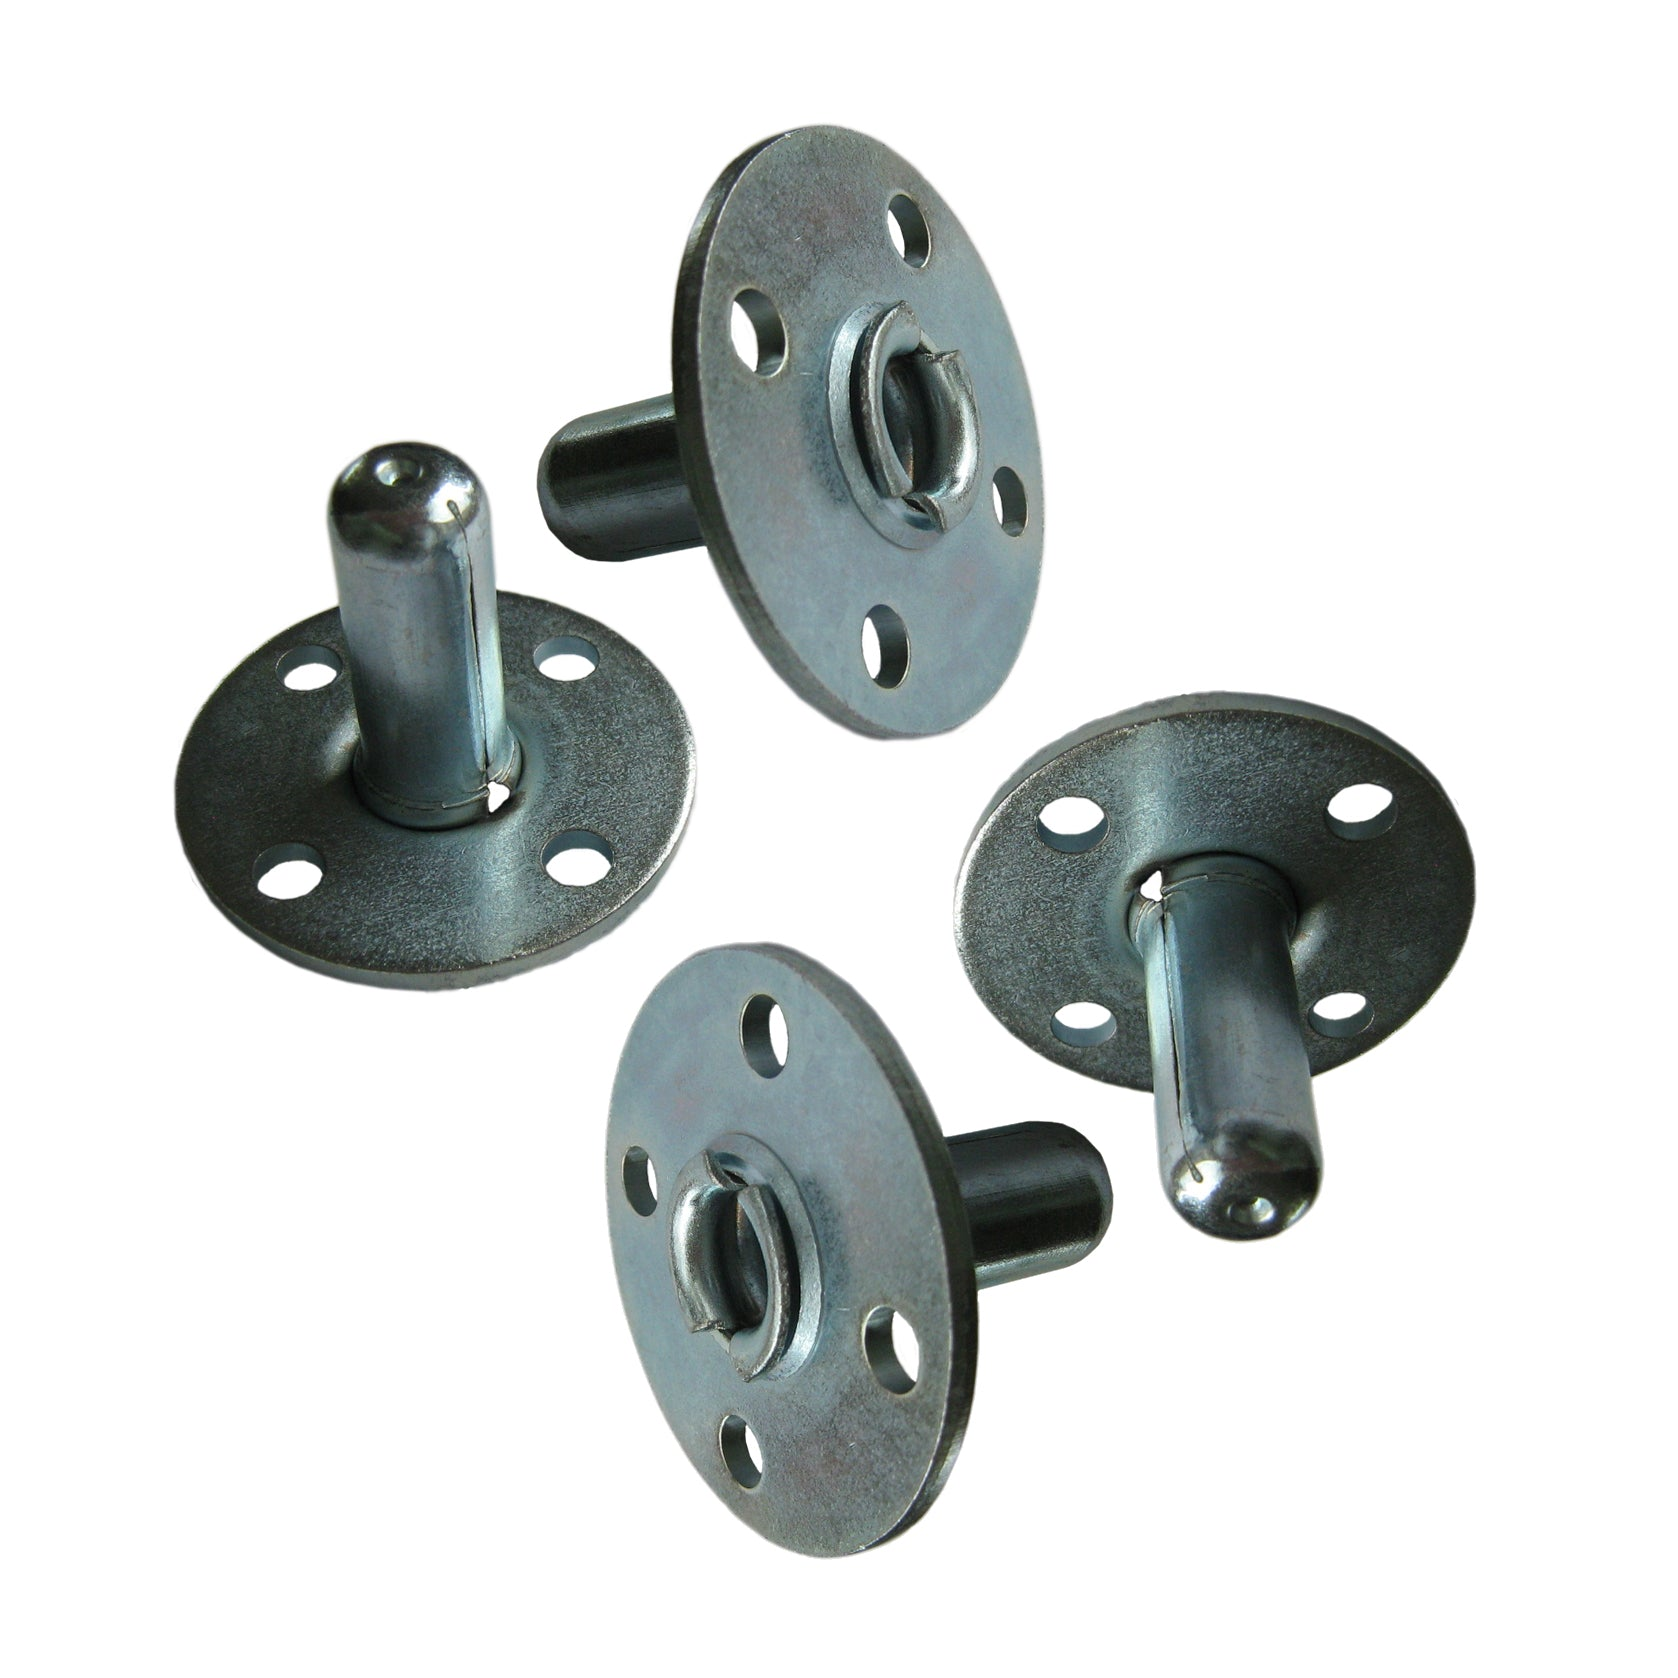 Photo shows set of four Broad-Brimmed Top Hat Caster Sockets. Also known as piano sockets.